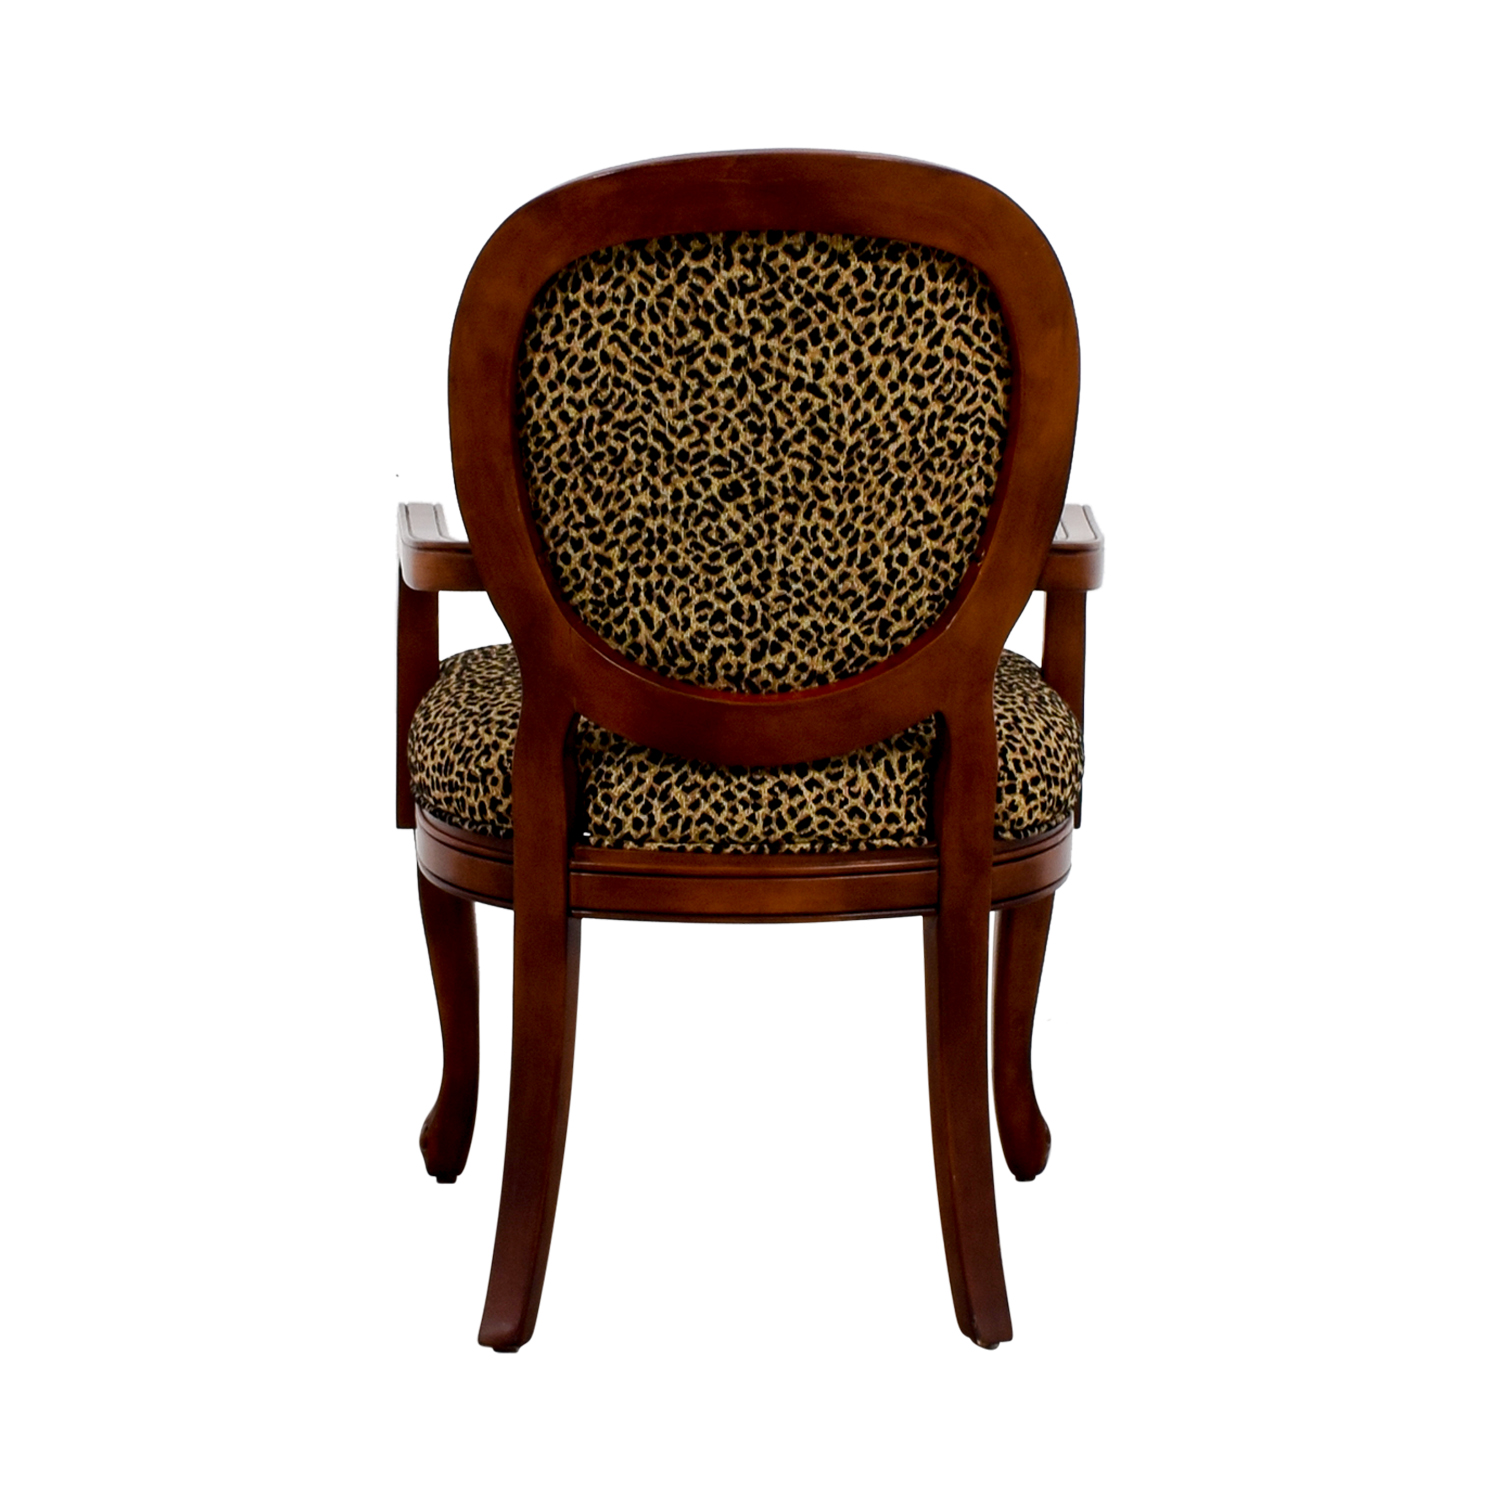 buy Leopard Upholstered Wood Arm Chair